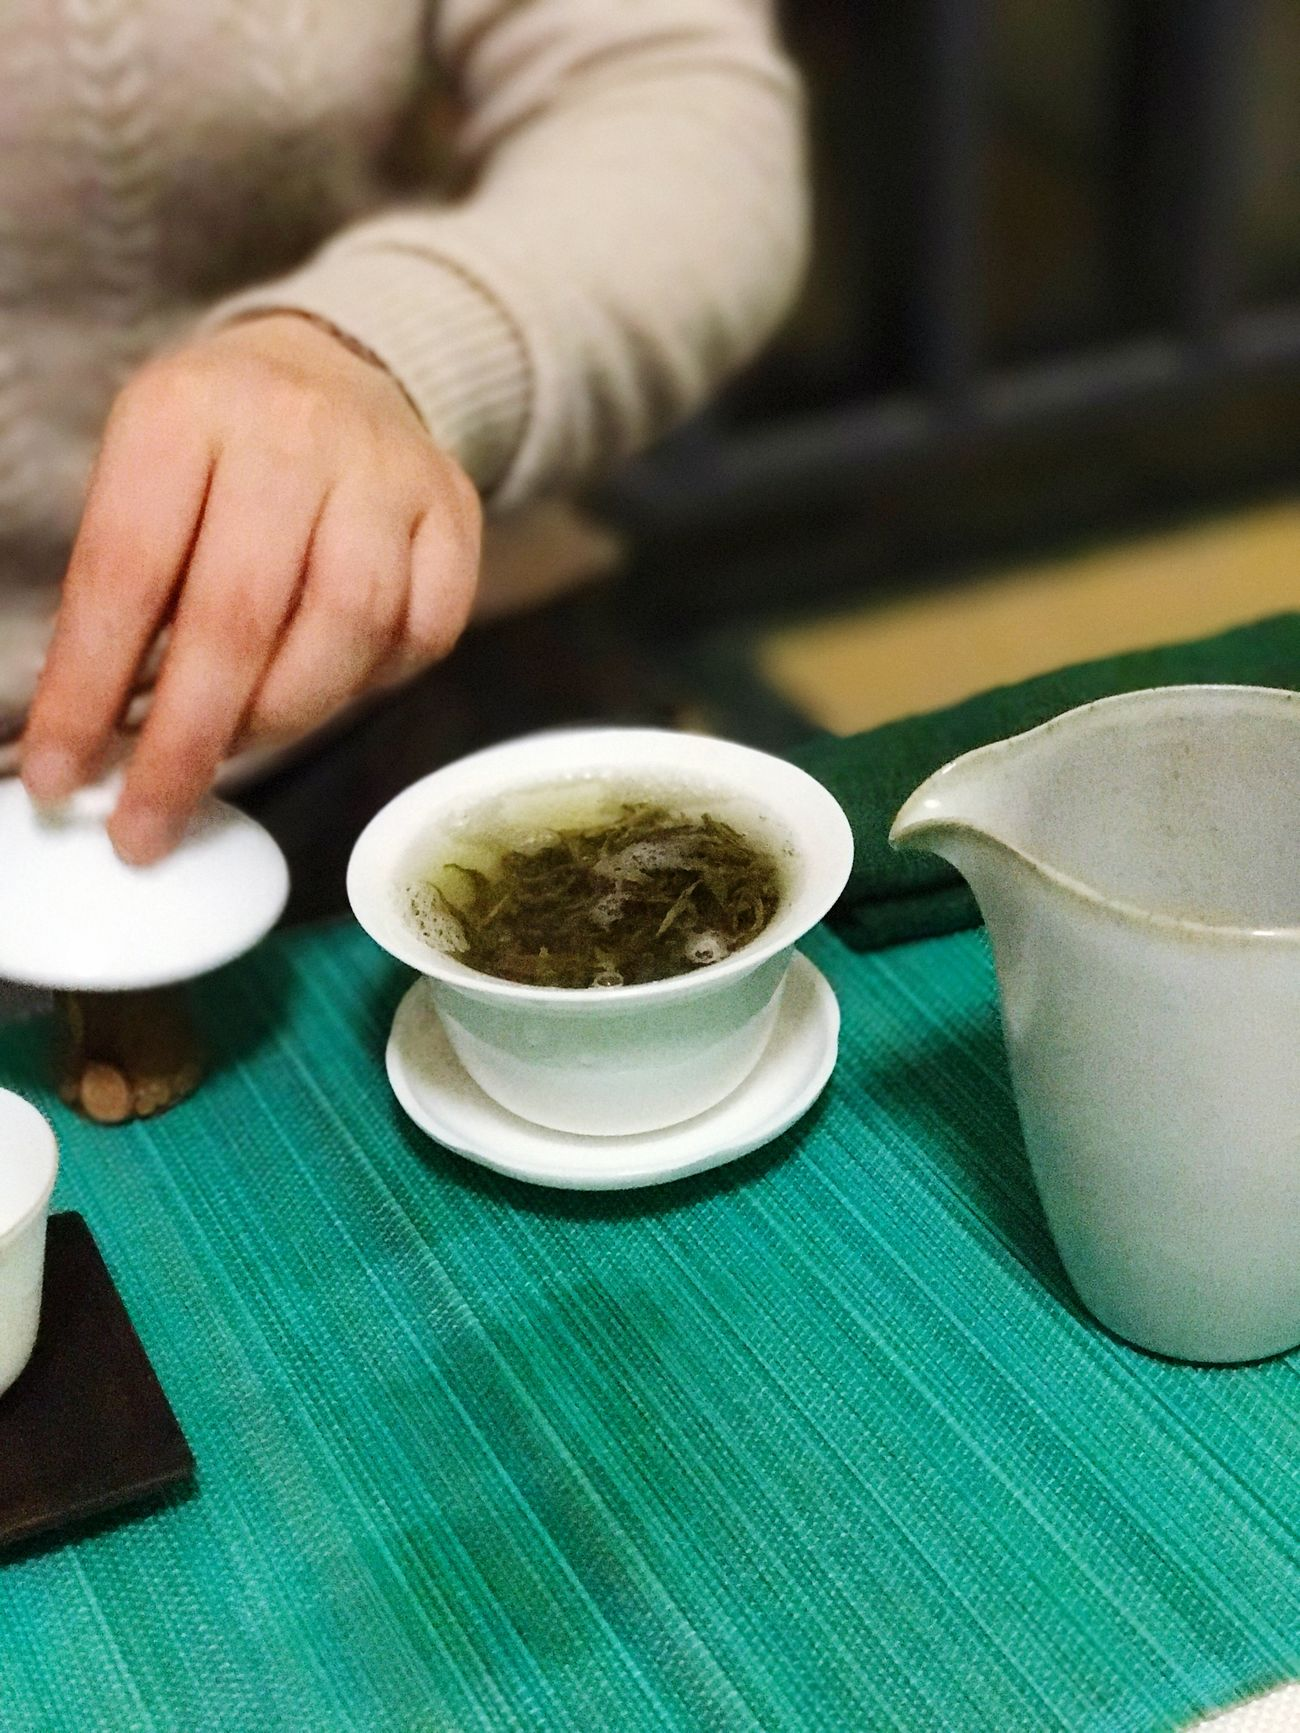 Green Tea Food And Drink One Person Cultures Tea - Hot Drink Indoors  Drink Holding Lifestyles Tradition Close-up Human Hand Tea Ceremony Healthy Eating